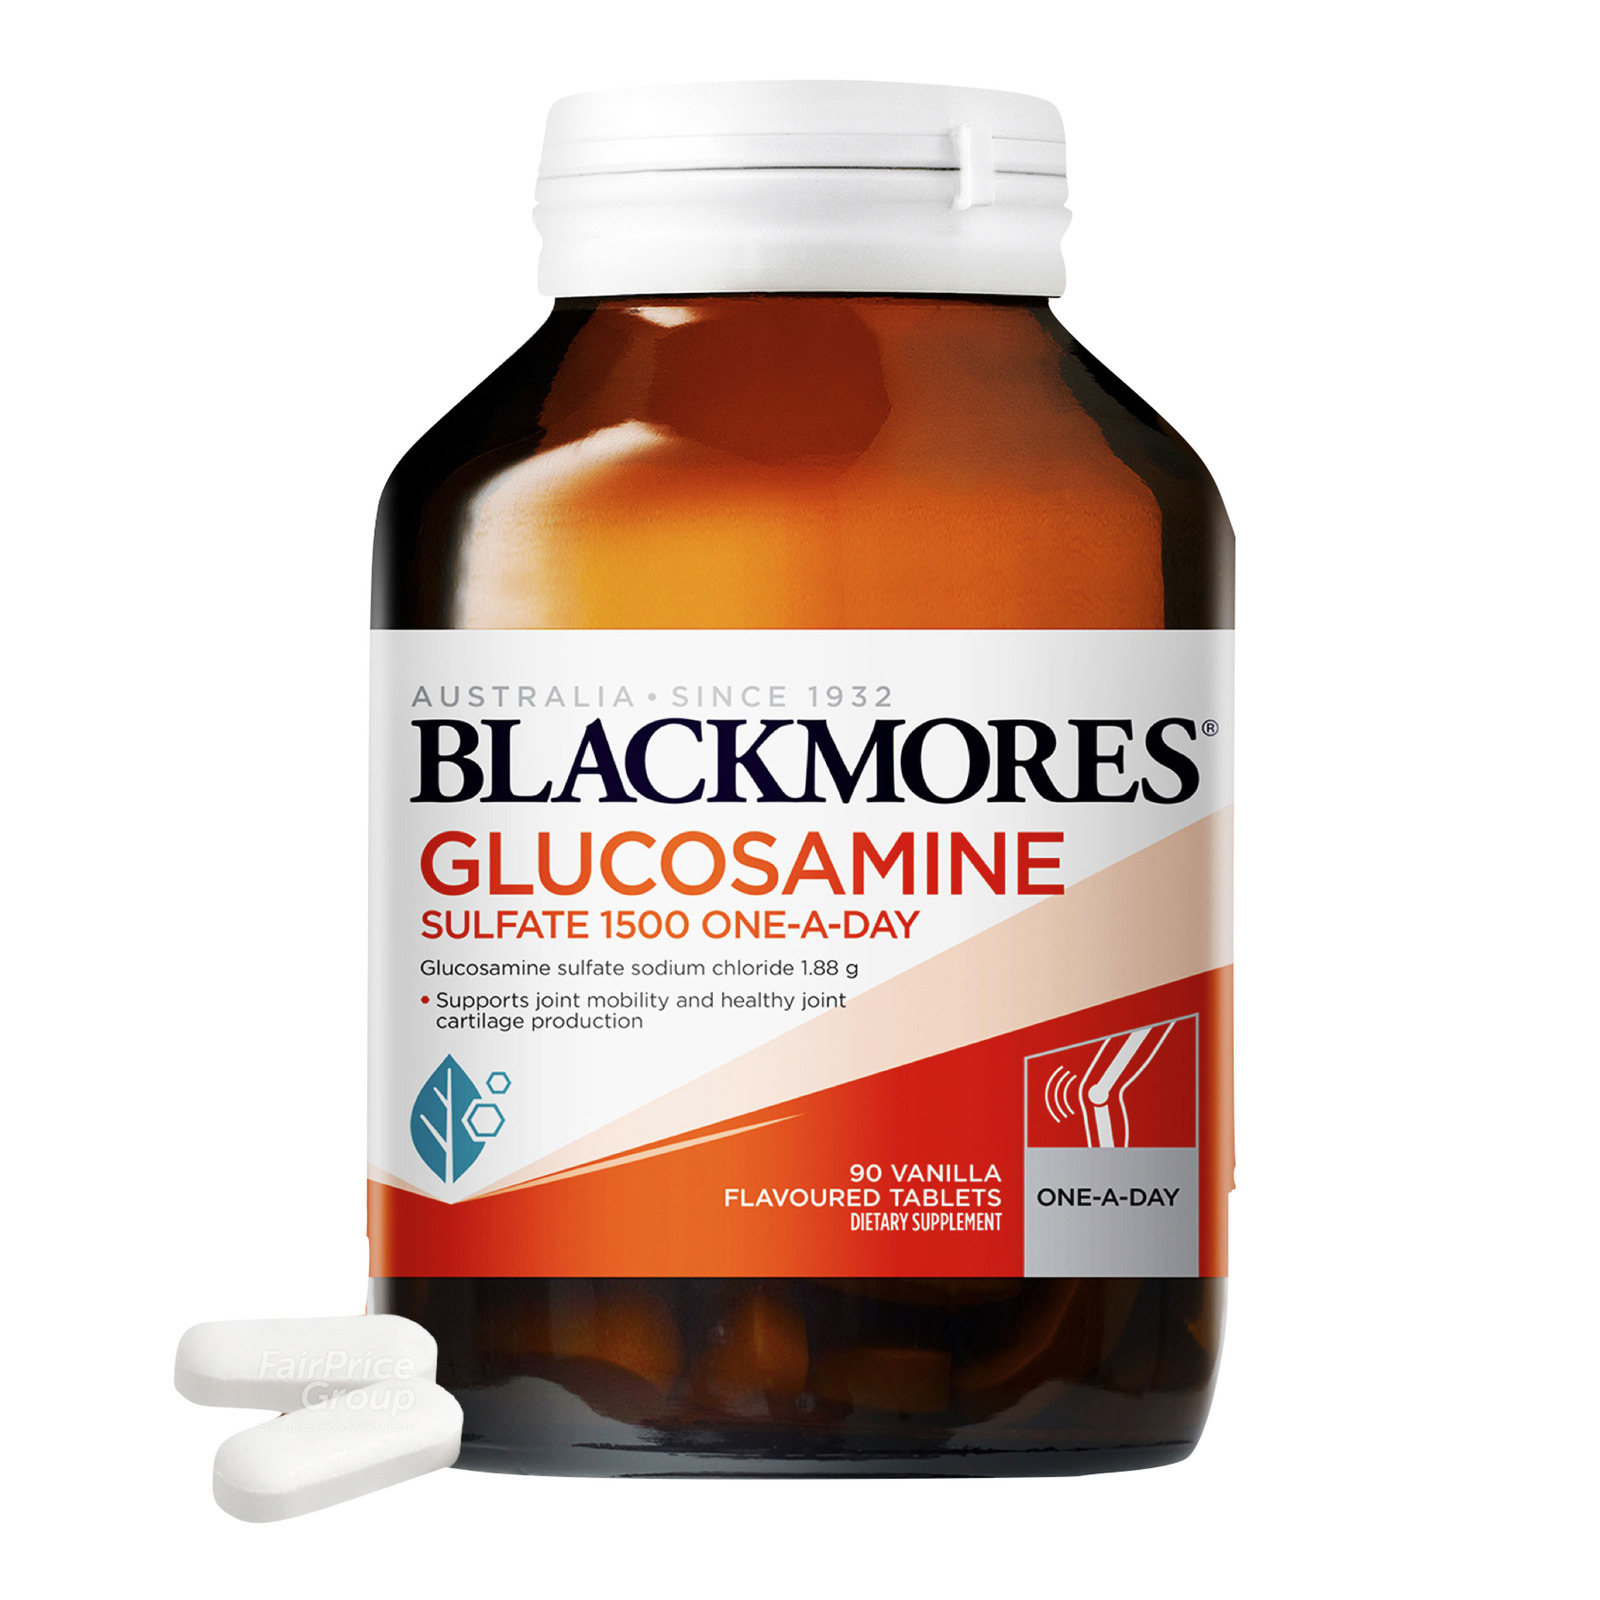 Blackmores Healthy Joints Tablet - Glucosamine 1500